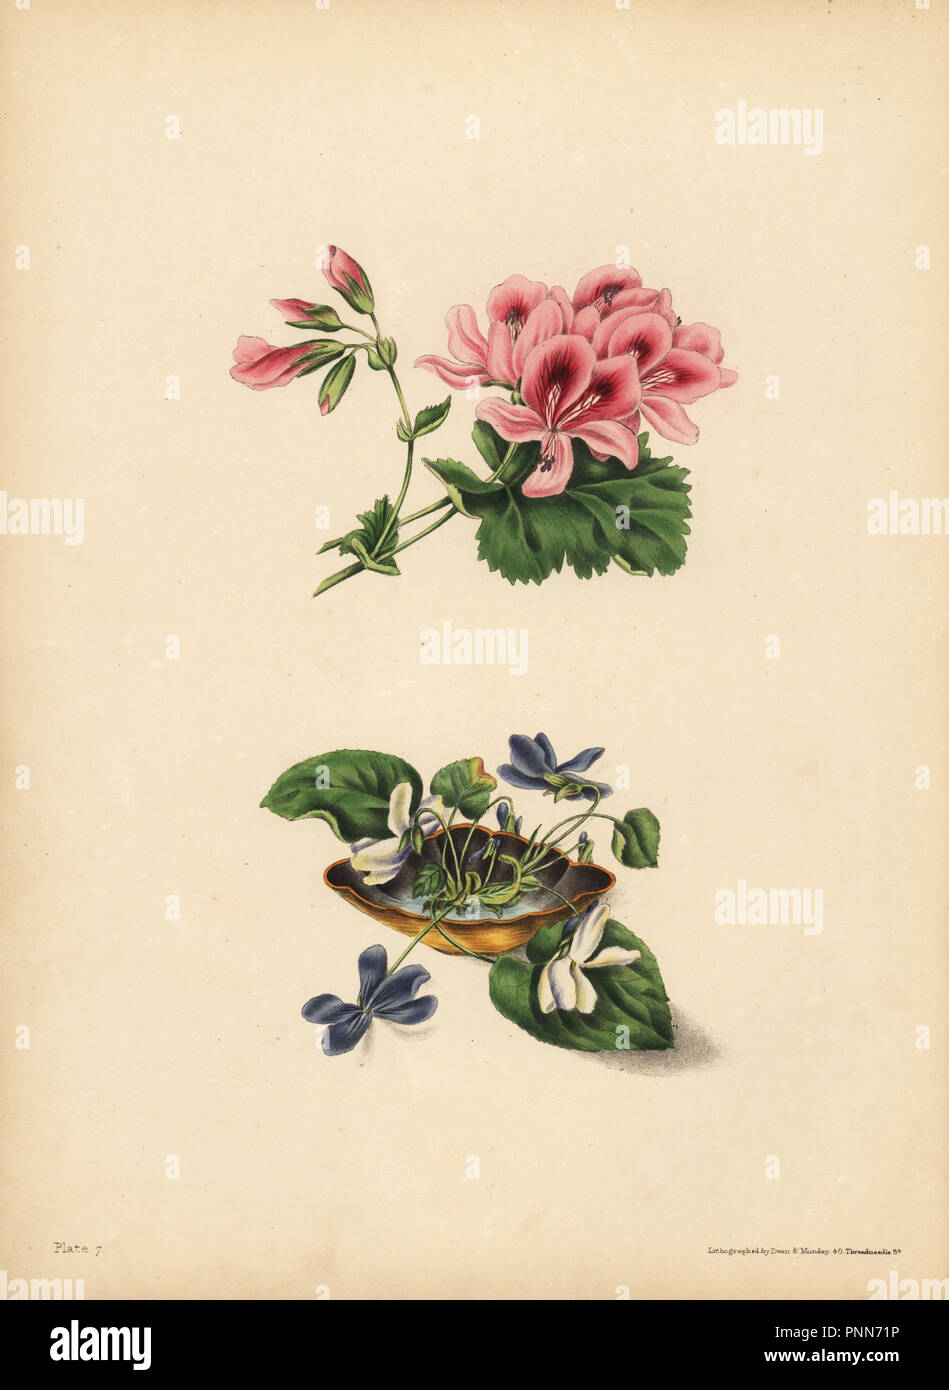 Smith's Geranium, Preference; The sweet purple and white flowered Violets, Purity of sentiment, candour, modesty & innocence. Handcoloured lithograph by Dean and Munday after an illustration by Eliza Eve Gleadall from The Beauties of Flora, with botanic and poetic illustrations, being a selection of flowers drawn from nature arranged emblematically, Heath Hall, Wakefield, 1834. - Stock Image